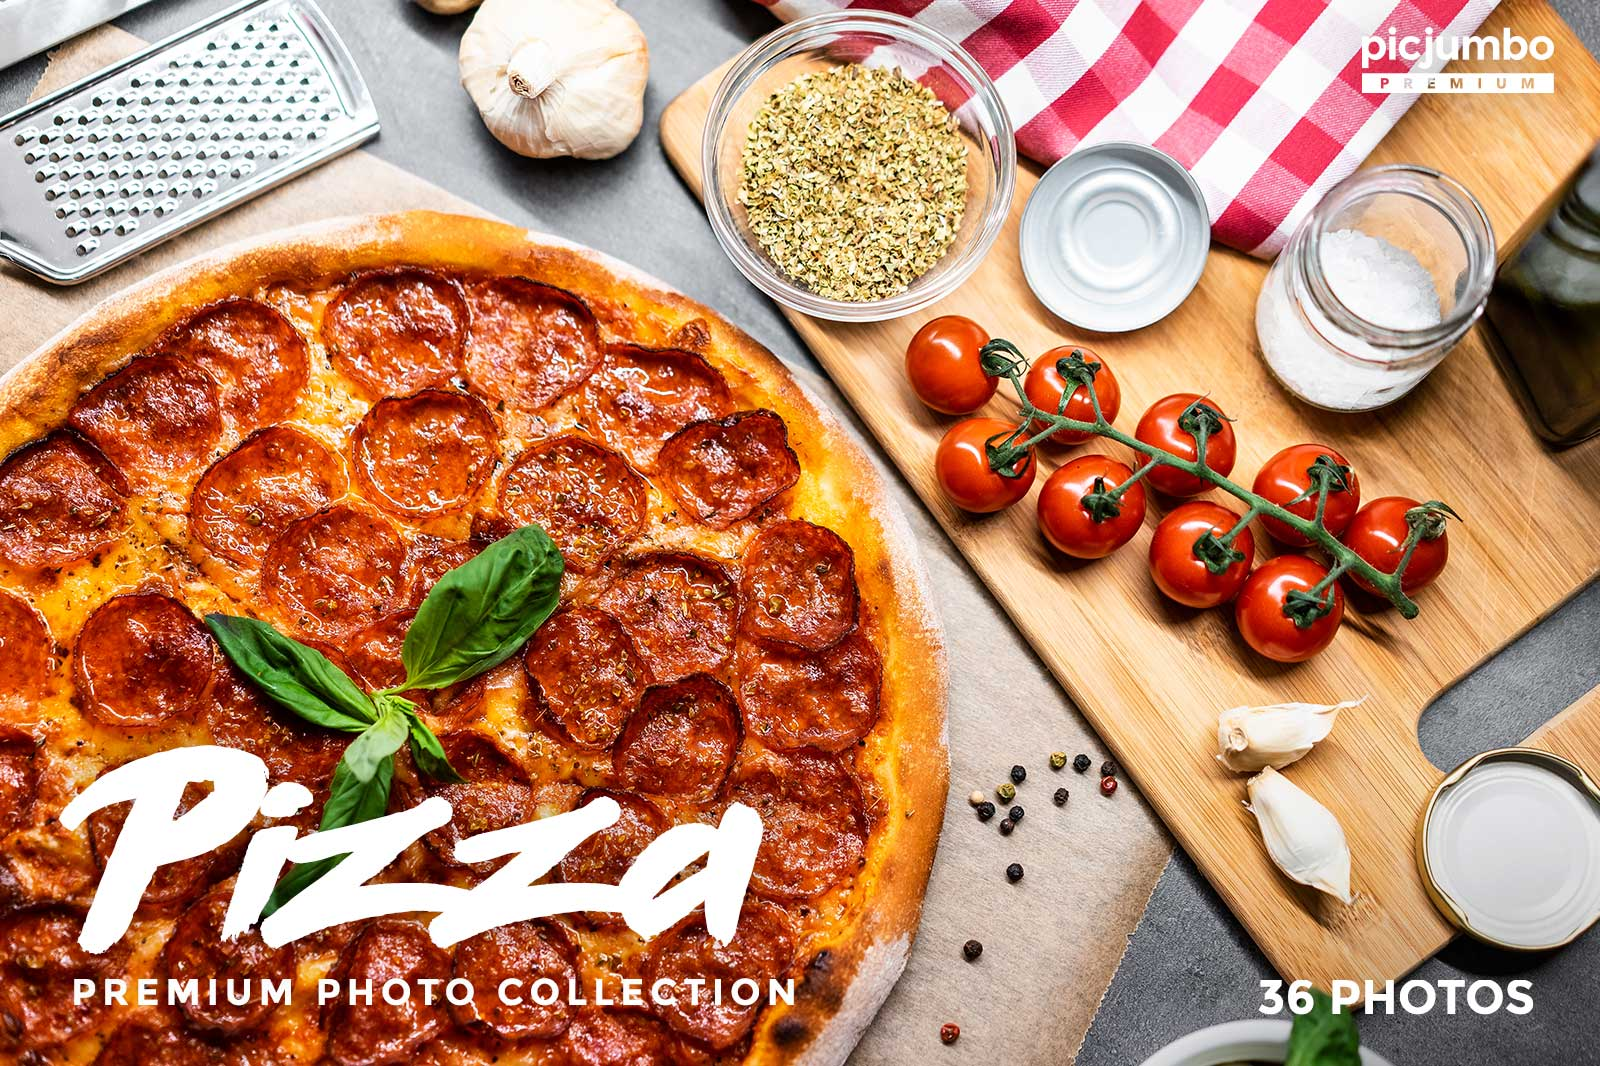 Pizza stock photo collection